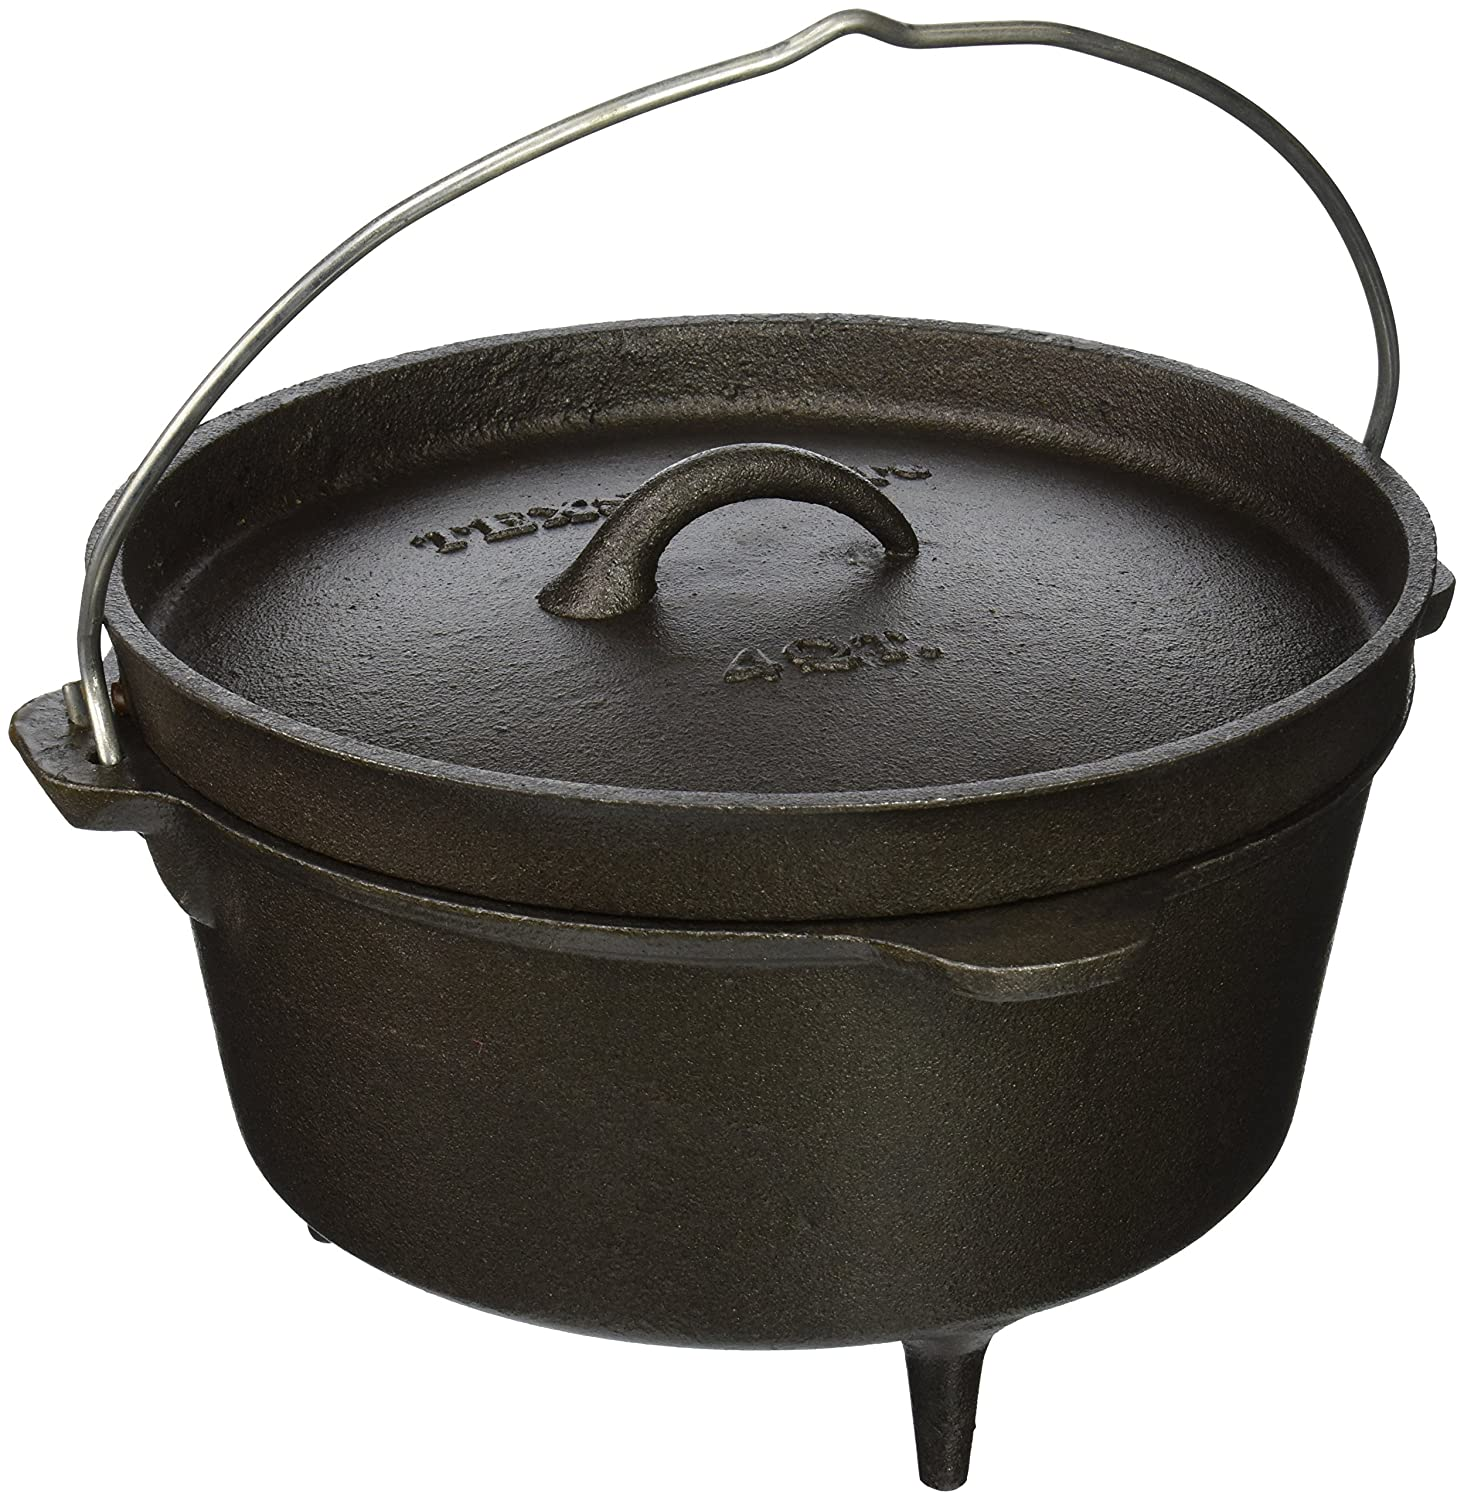 Top 10 Best Dutch Oven For Camping Reviews in 2021 4